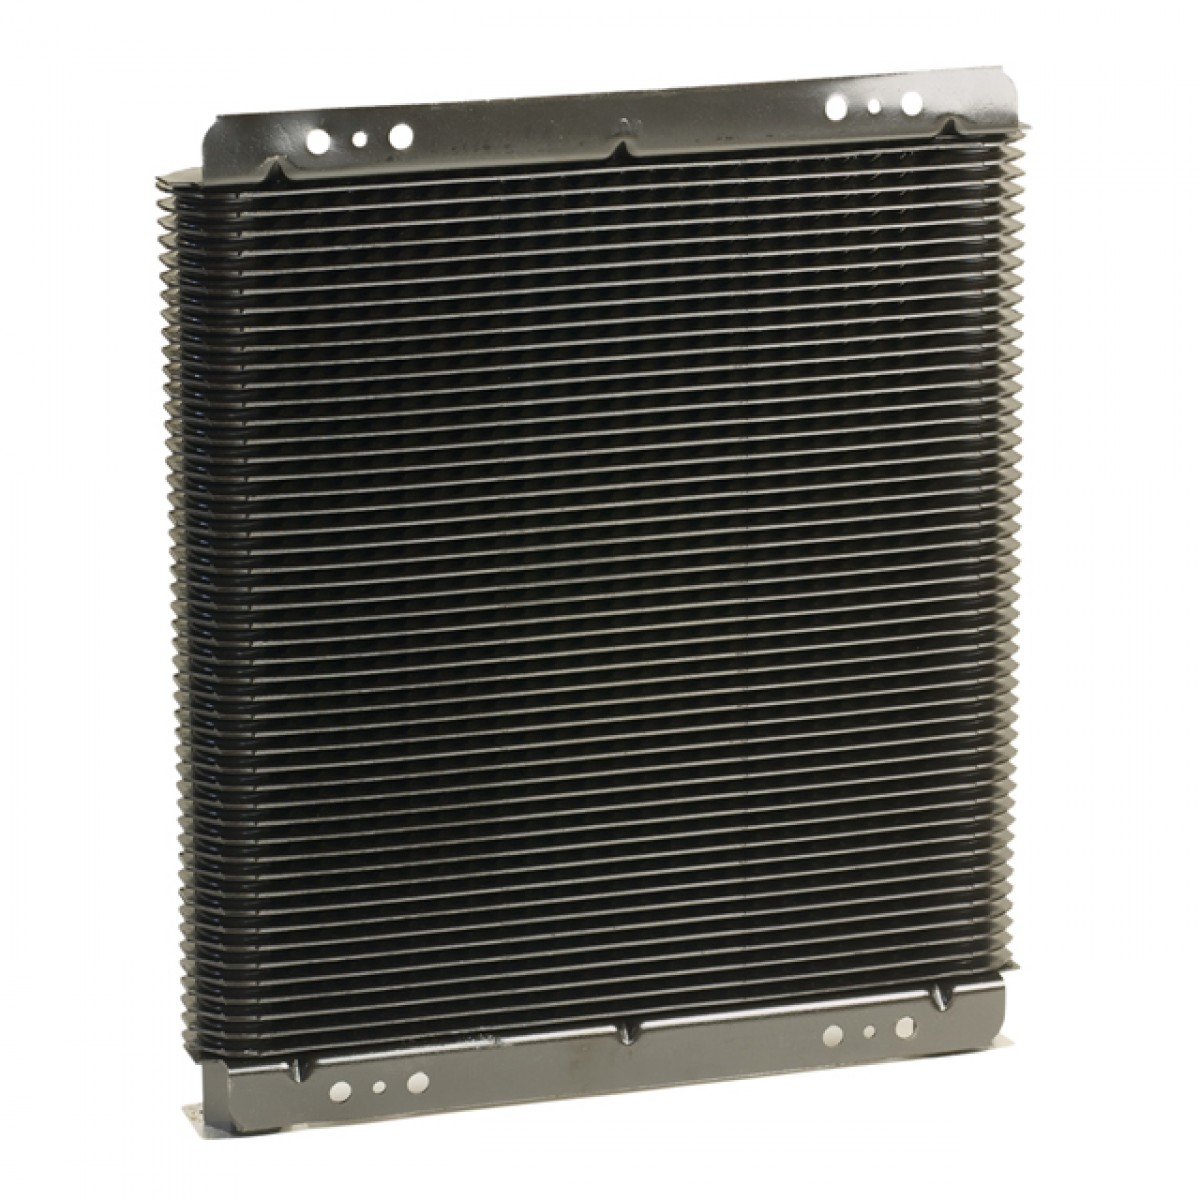 Transmission Fluid Cooler : Oil cooler transmission supercooler large black